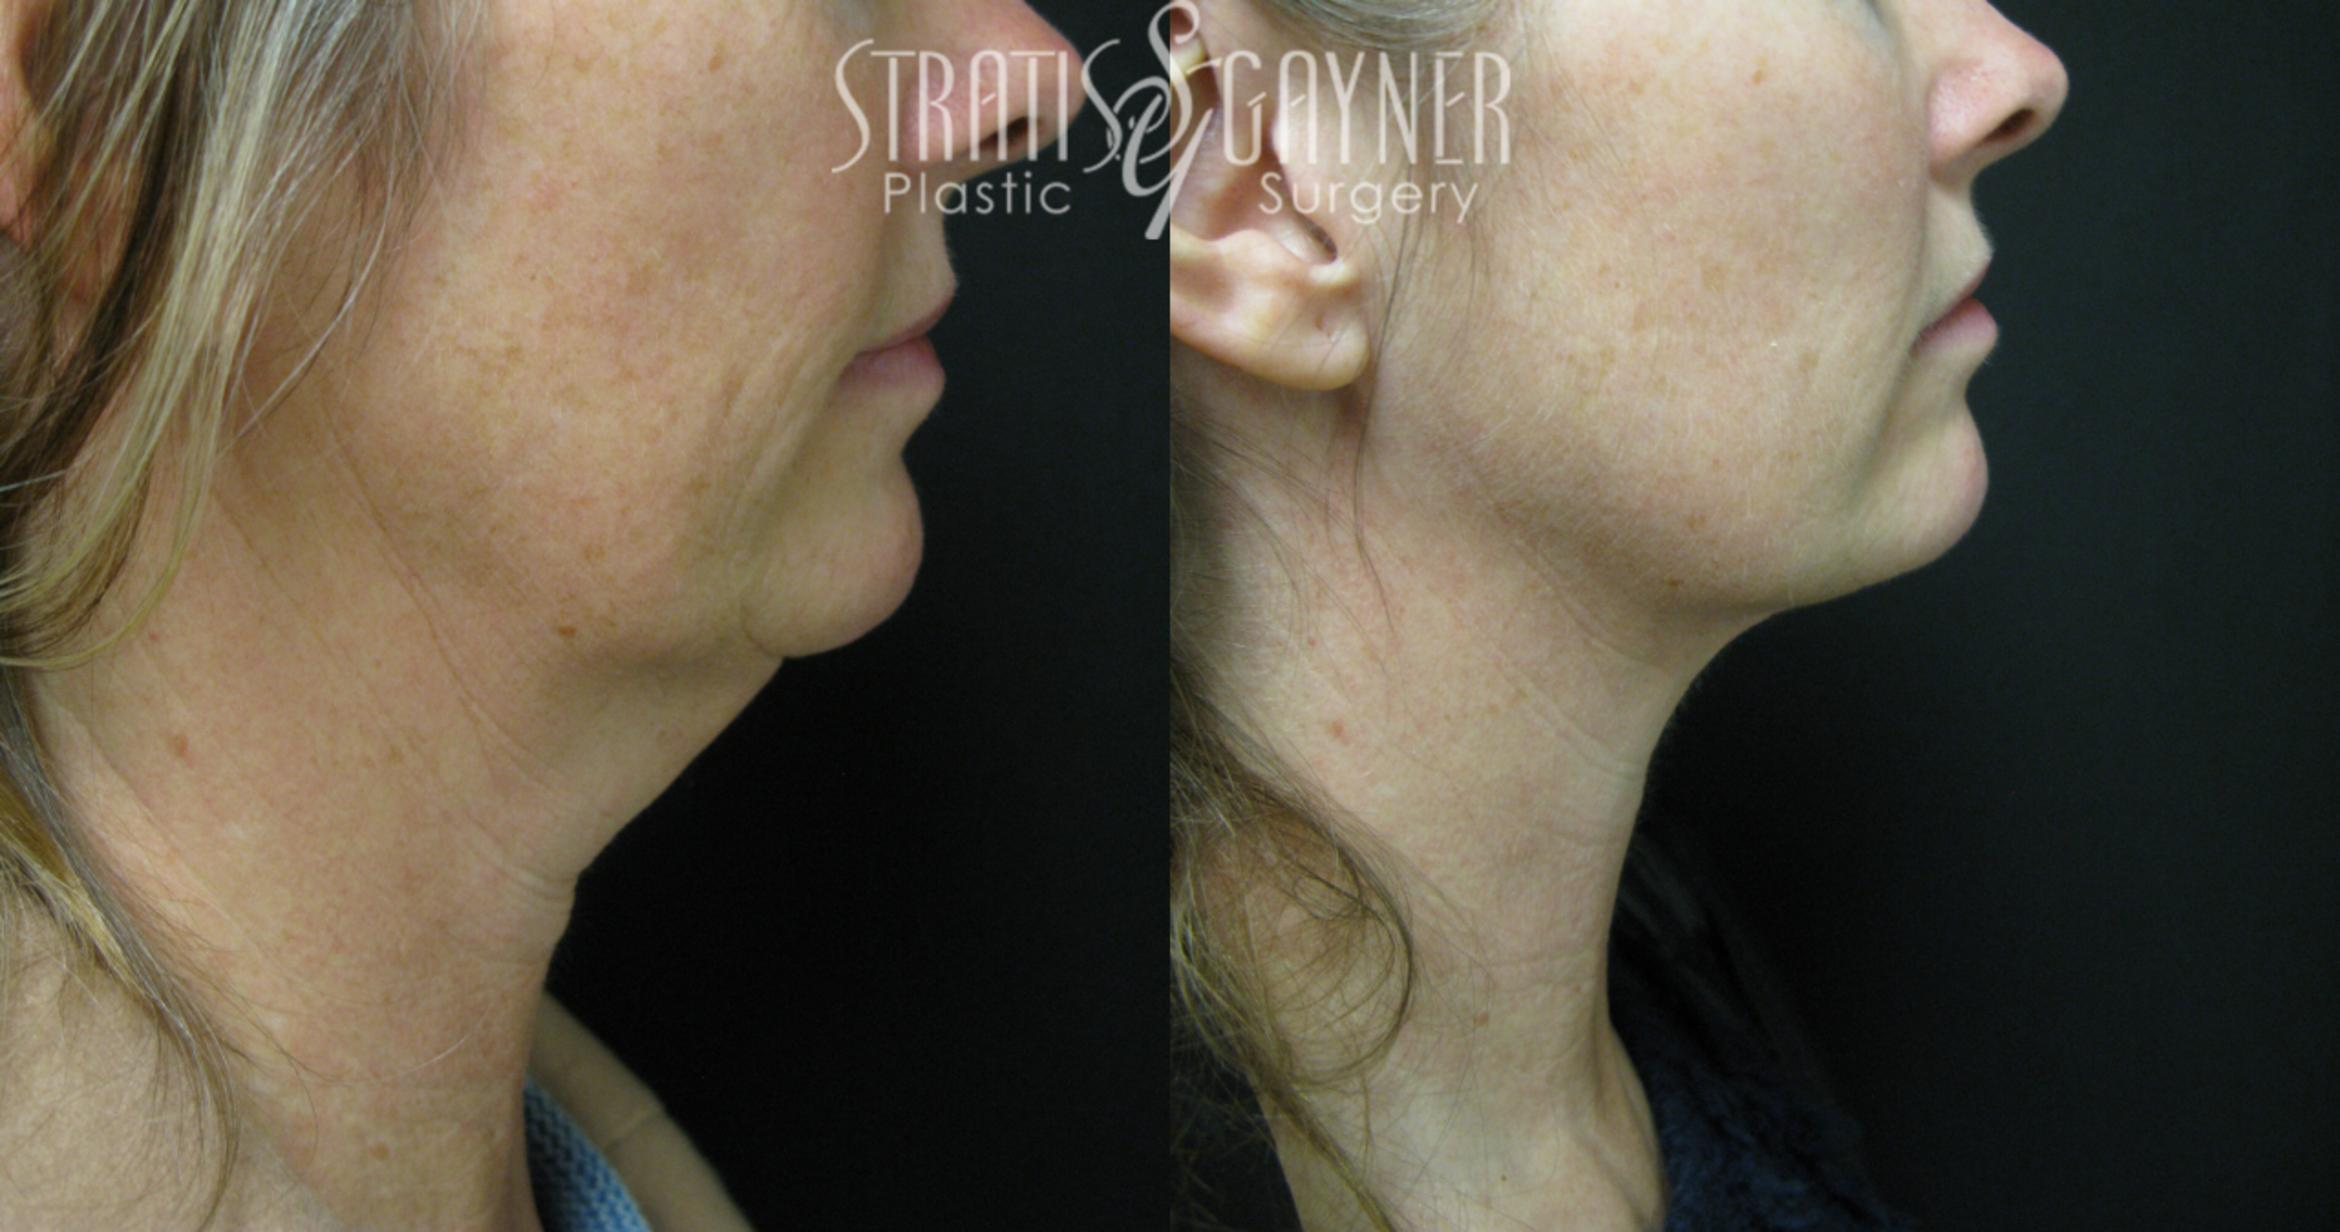 Facial Liposuction Case 34 Before & After View #1 | Harrisburg, PA | Stratis Gayner Plastic Surgery